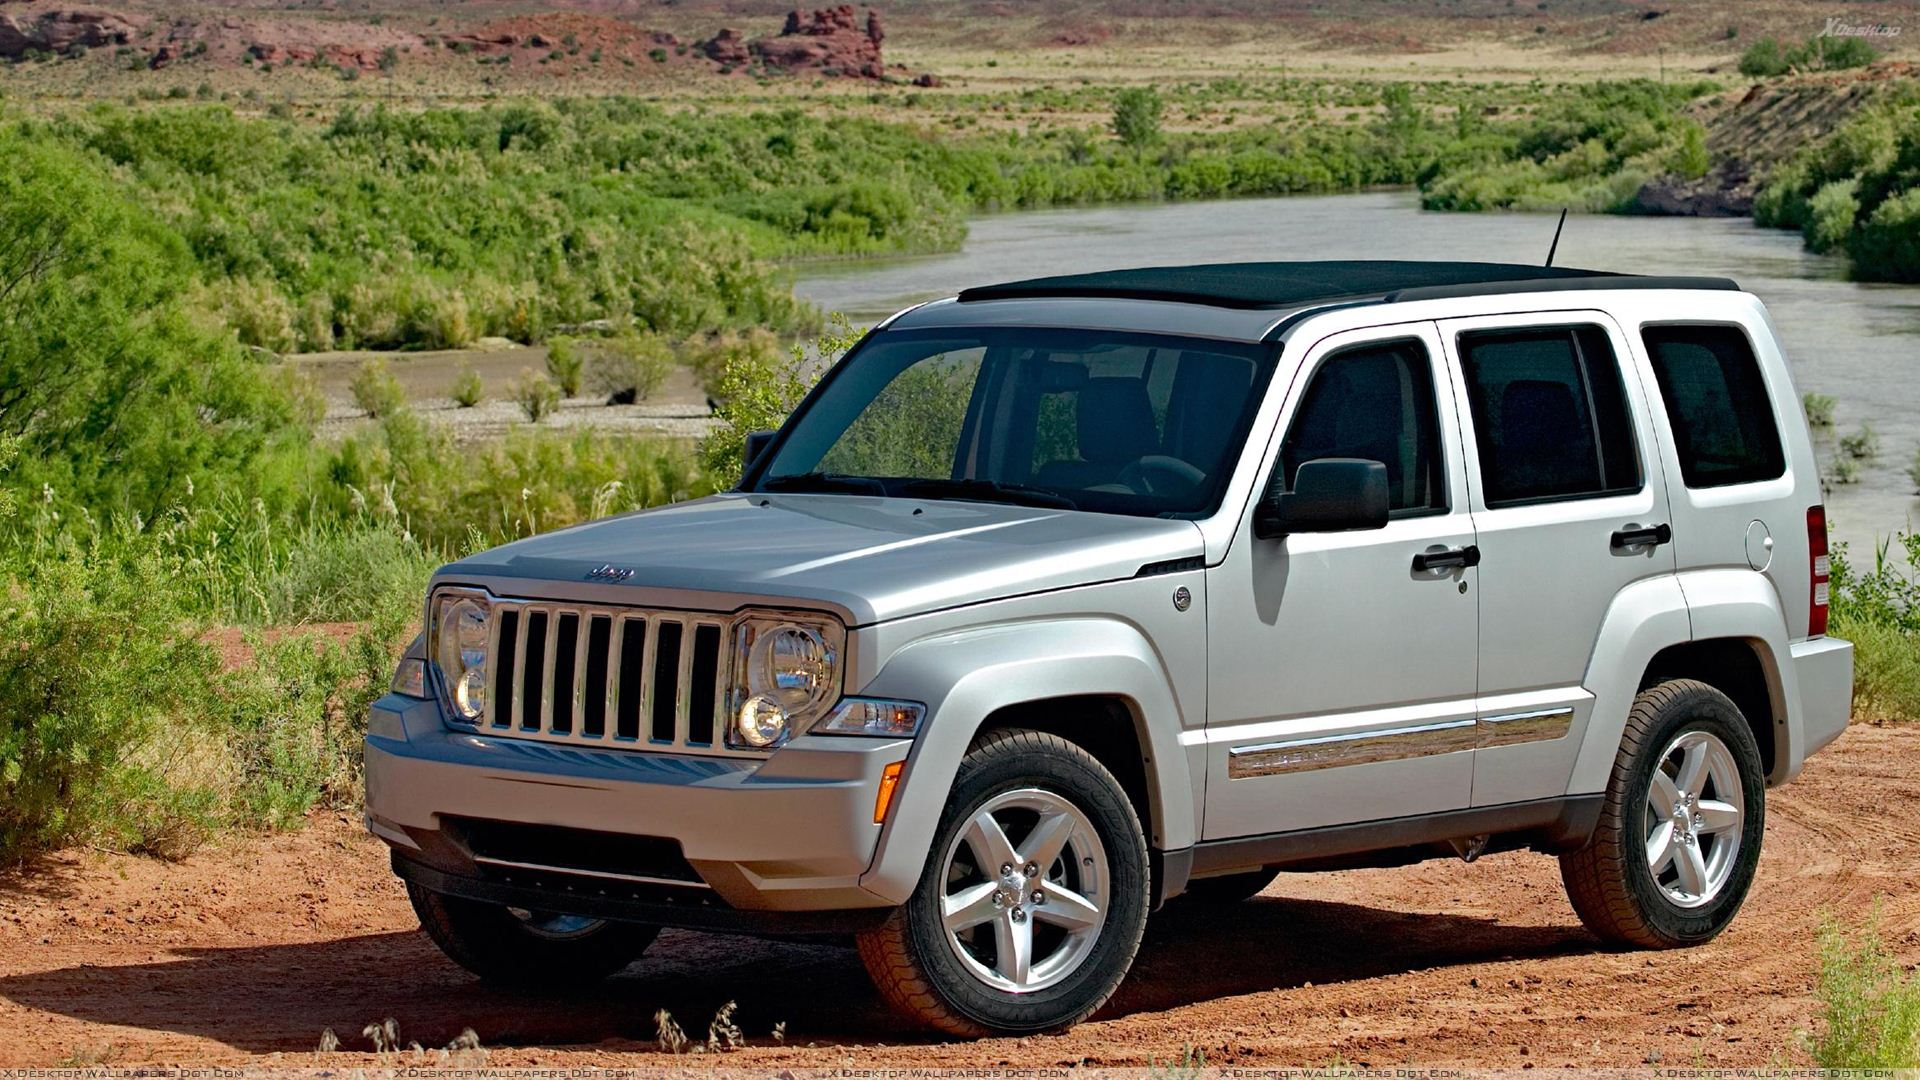 Best Internet Trends Jeep Liberty 2011 Silver